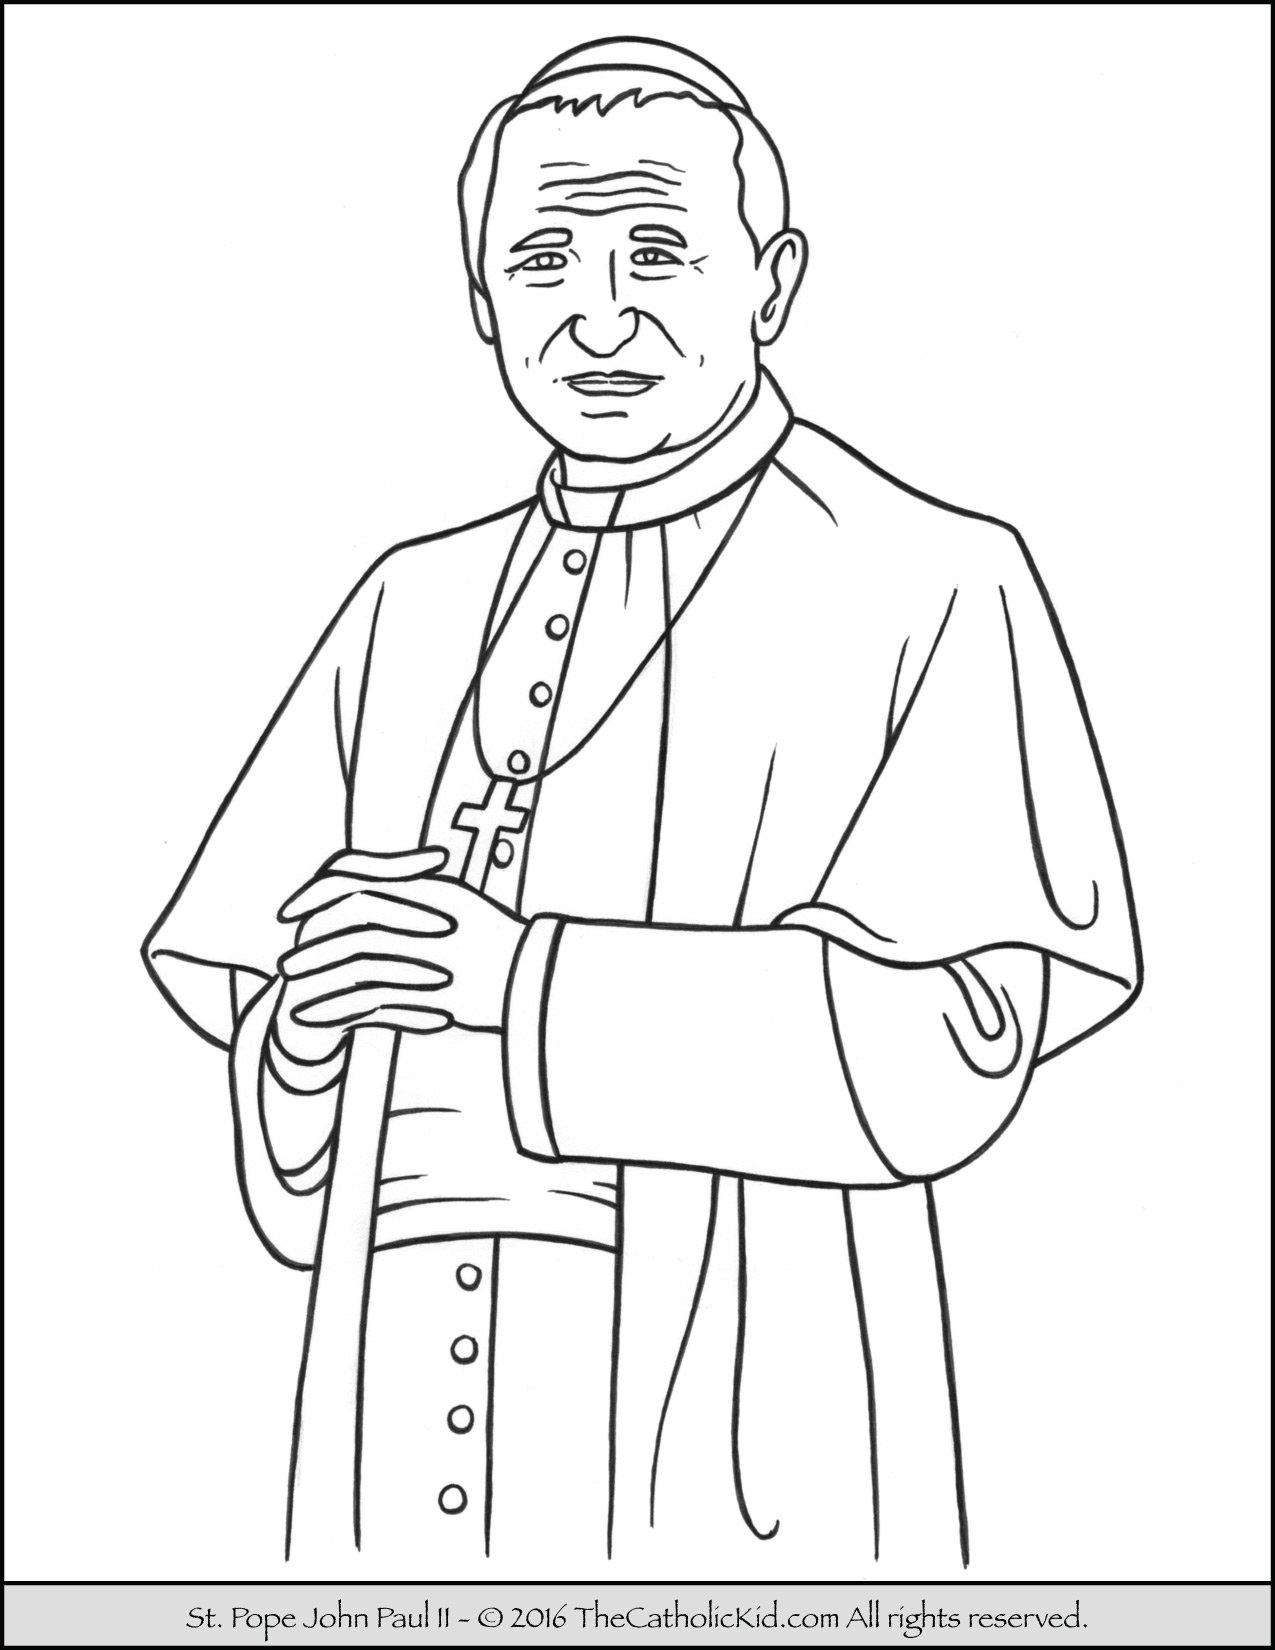 saint pope john paul ii coloring page thecatholickid com